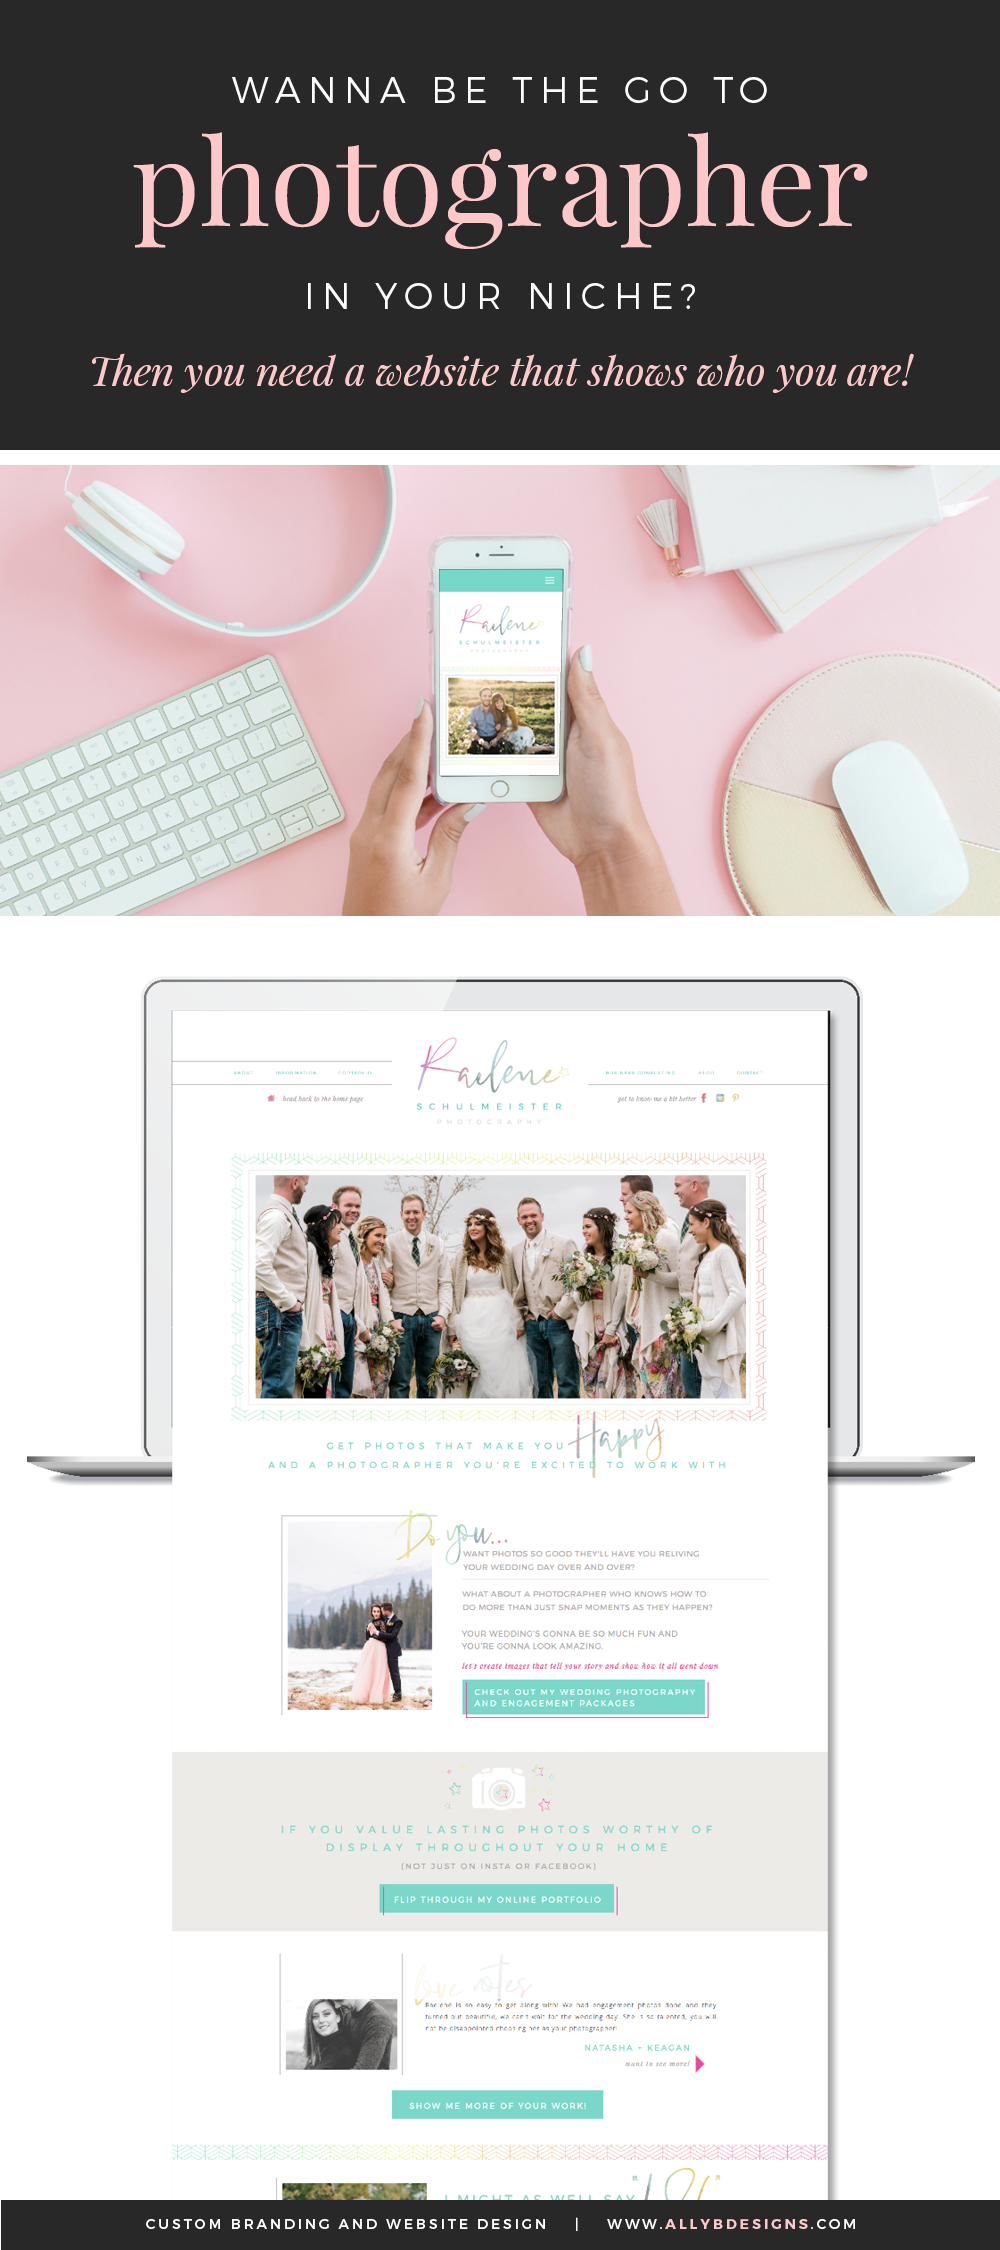 If You Want To Be The Go To Photographer You Need A Brand And Website That Connects With Your Ideal Photographer Branding Design Web Design Web Design Company